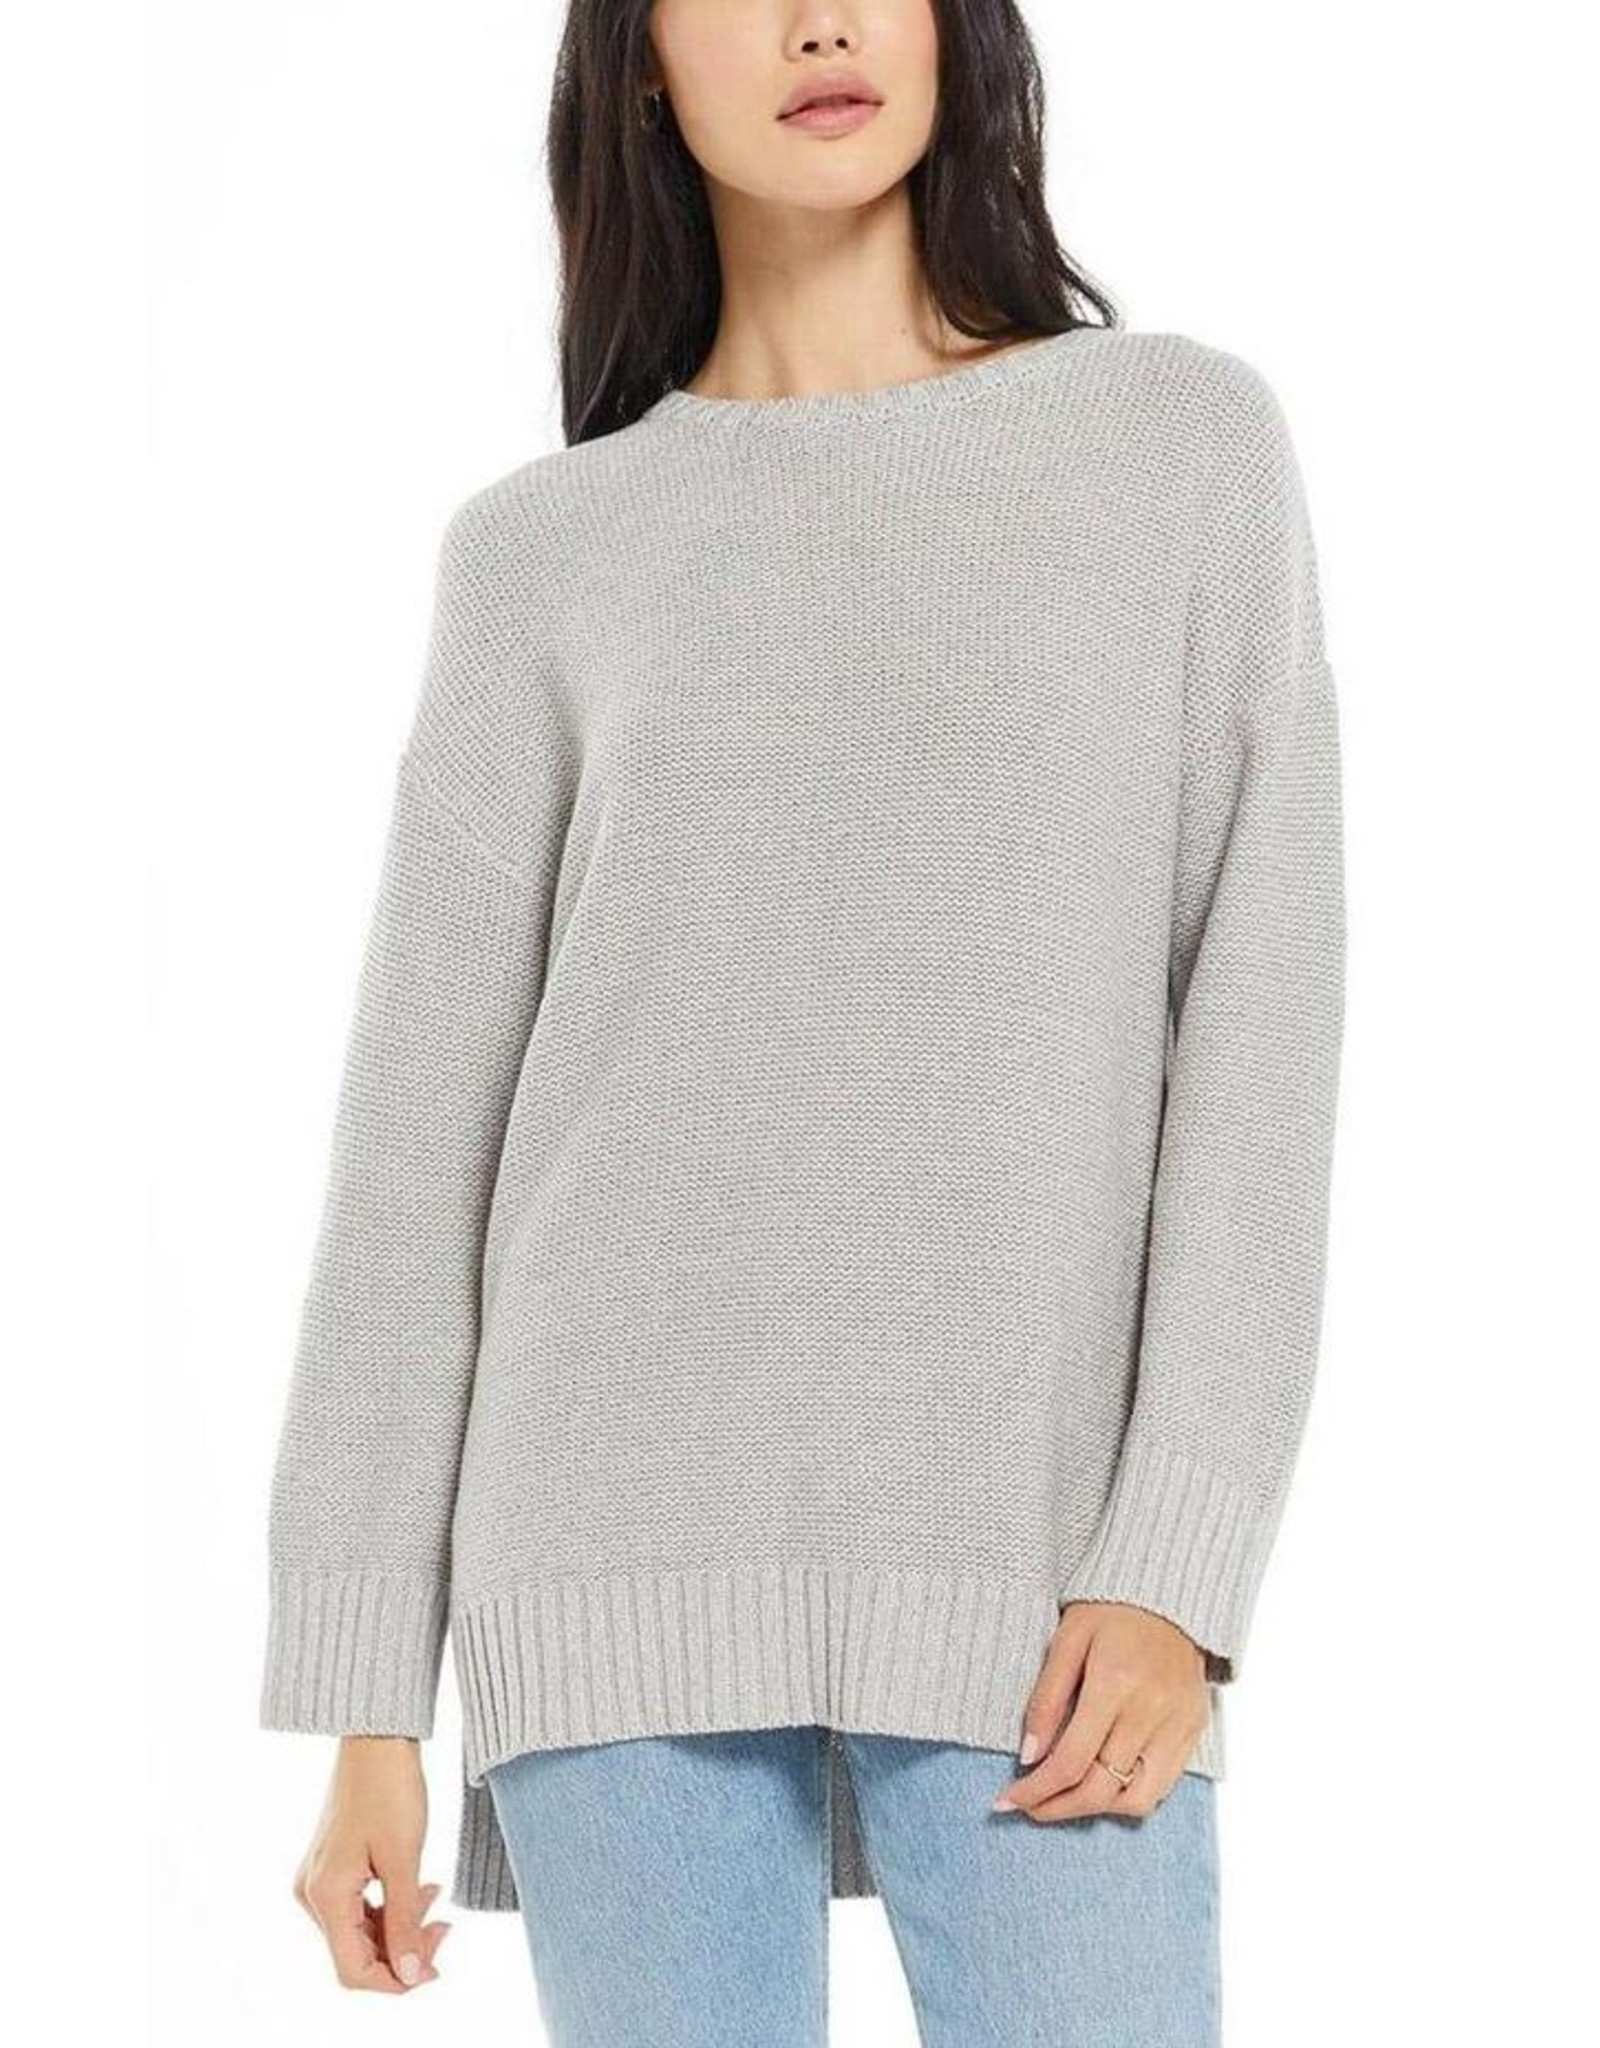 Z Supply - Airee Tunic Sweater